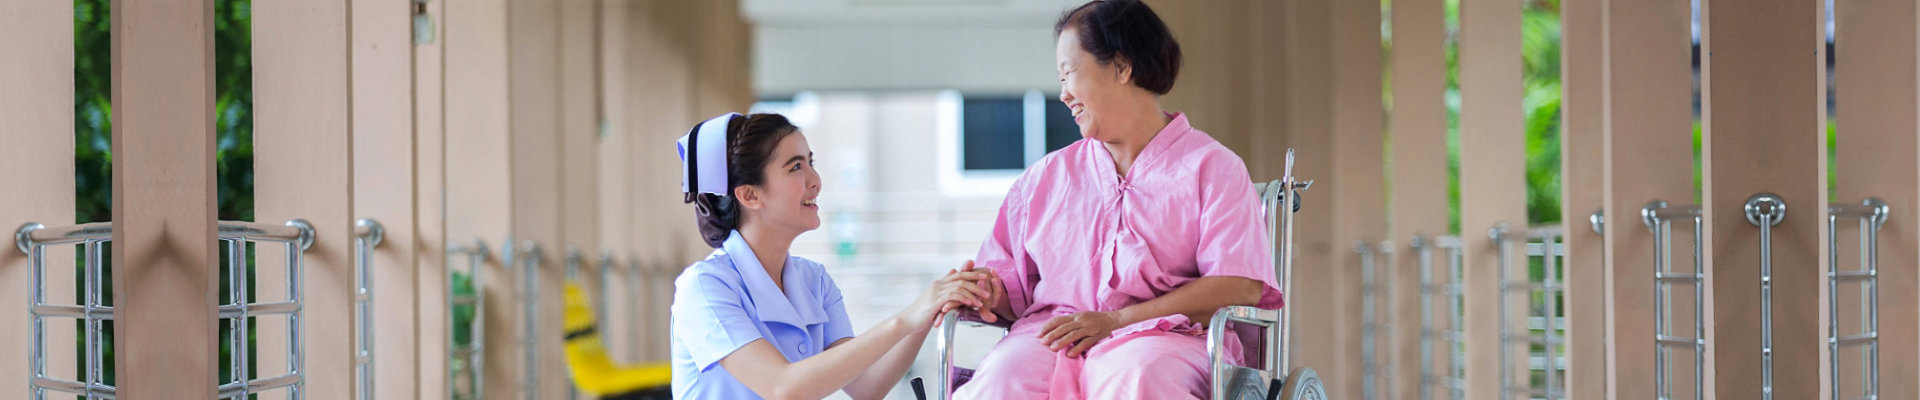 nurse talking care of her sick patient